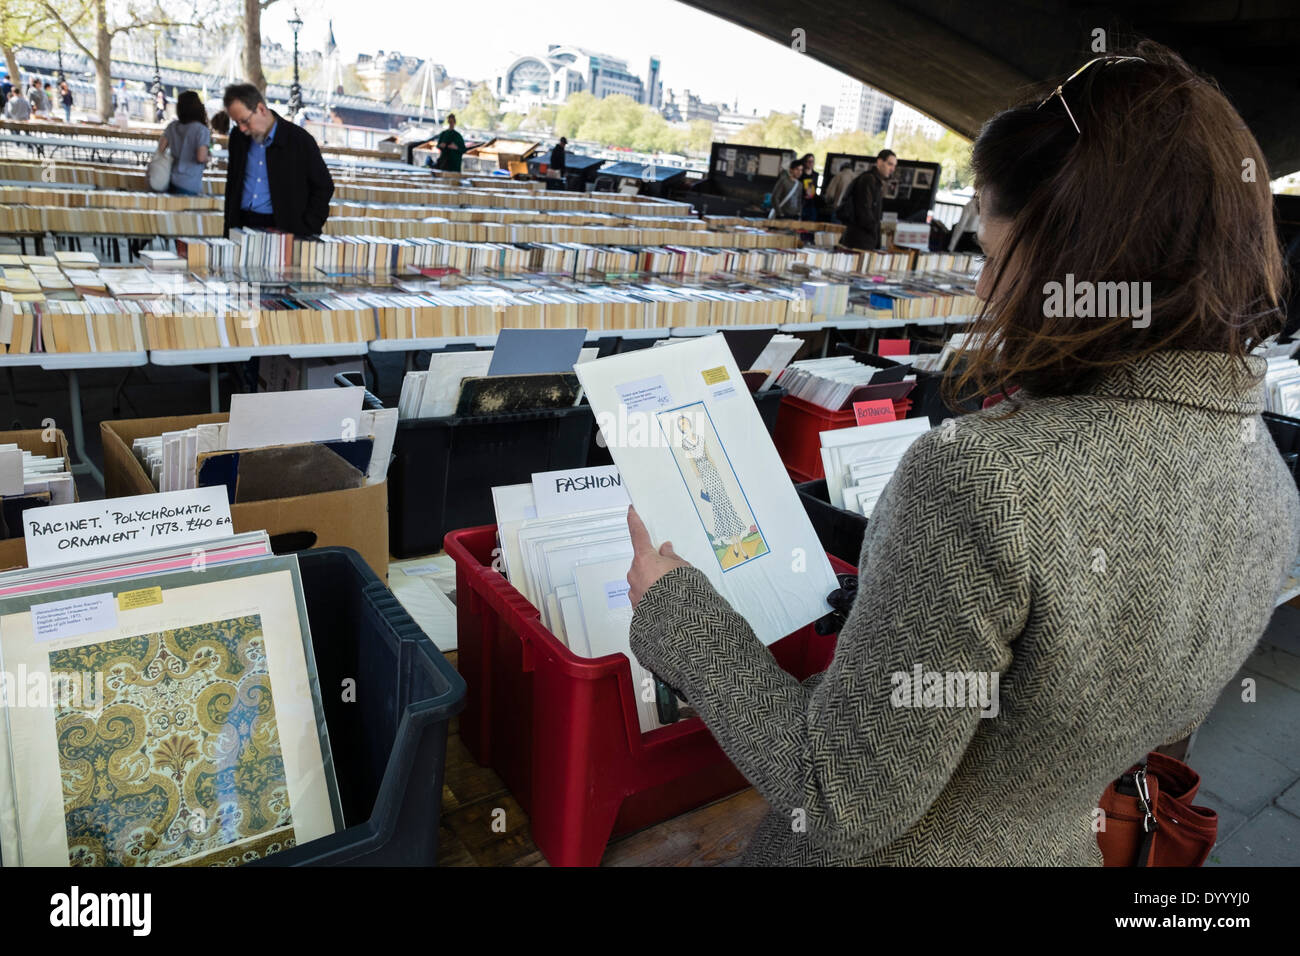 Second-hand book stalls on the Thames at Southbank in central London United Kingdom - Stock Image